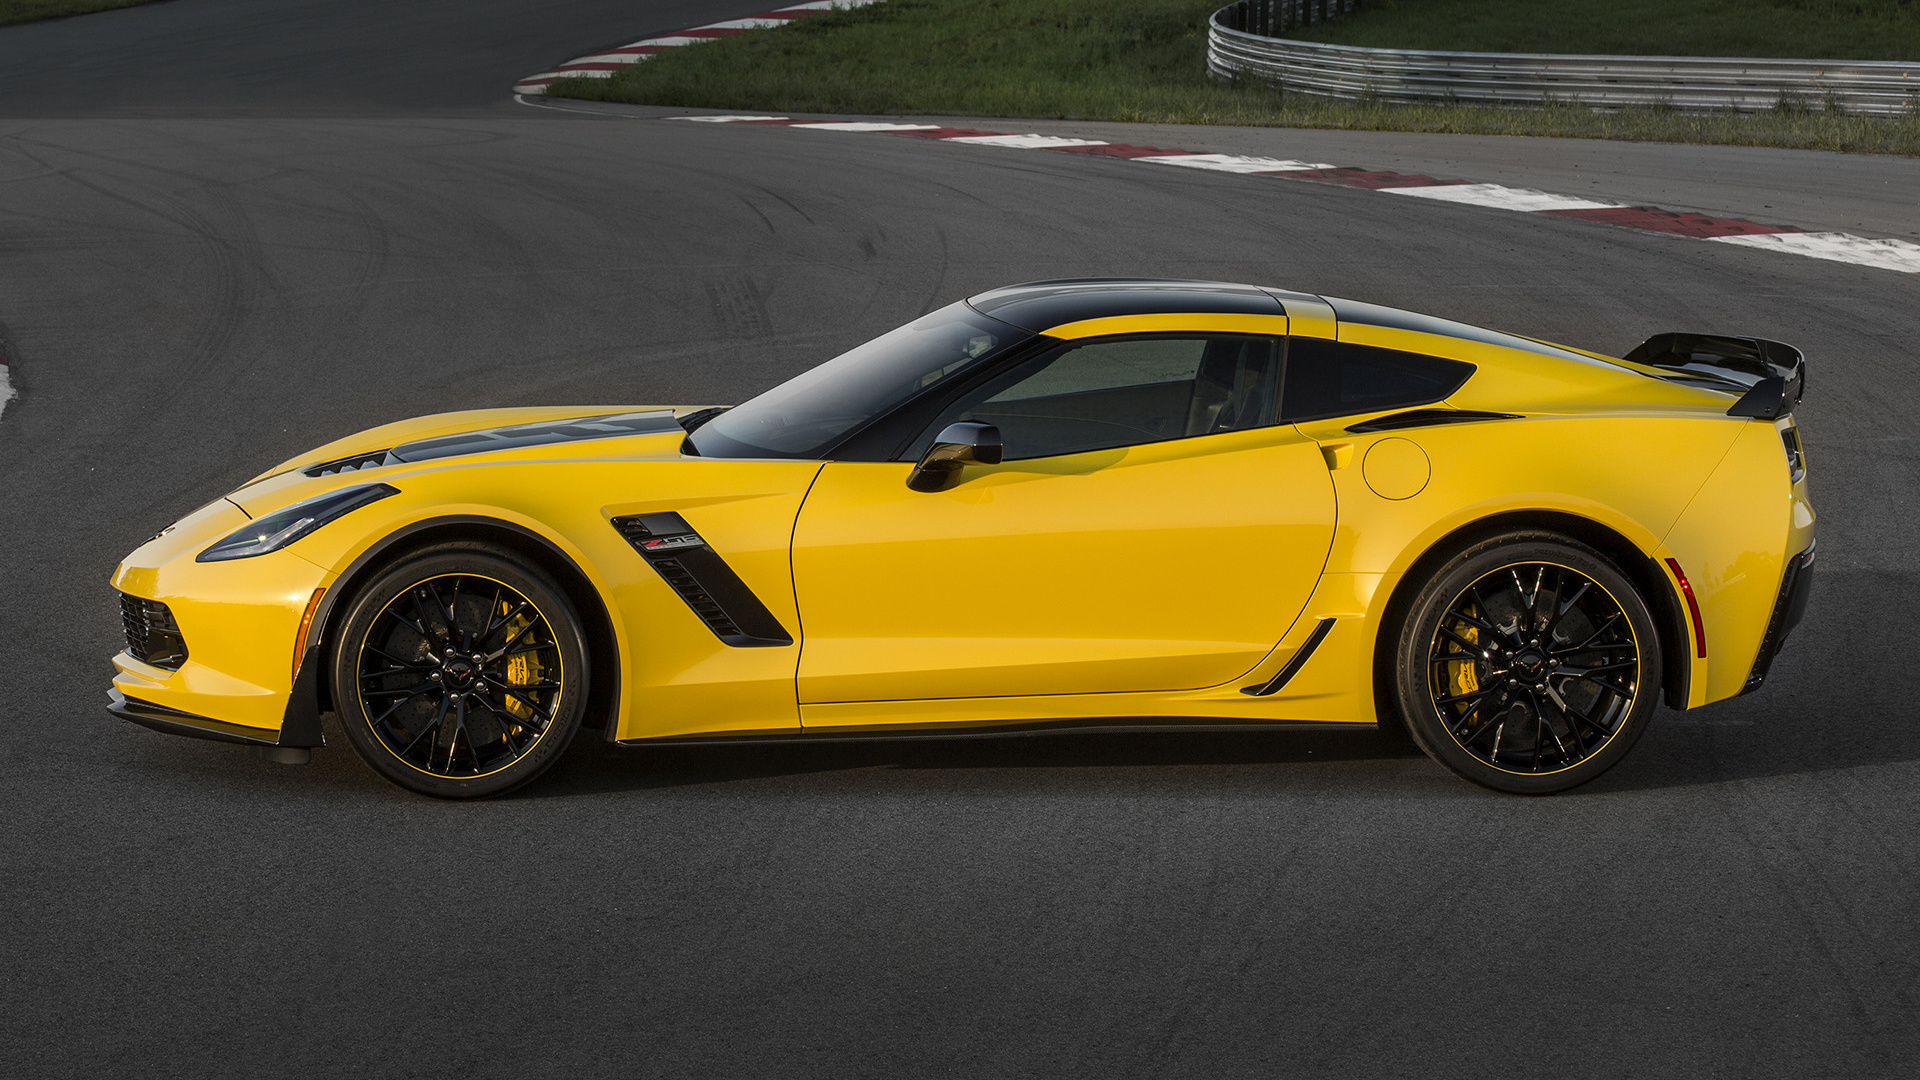 2016 Chevrolet Corvette Z06 C7 R Edition Coupe